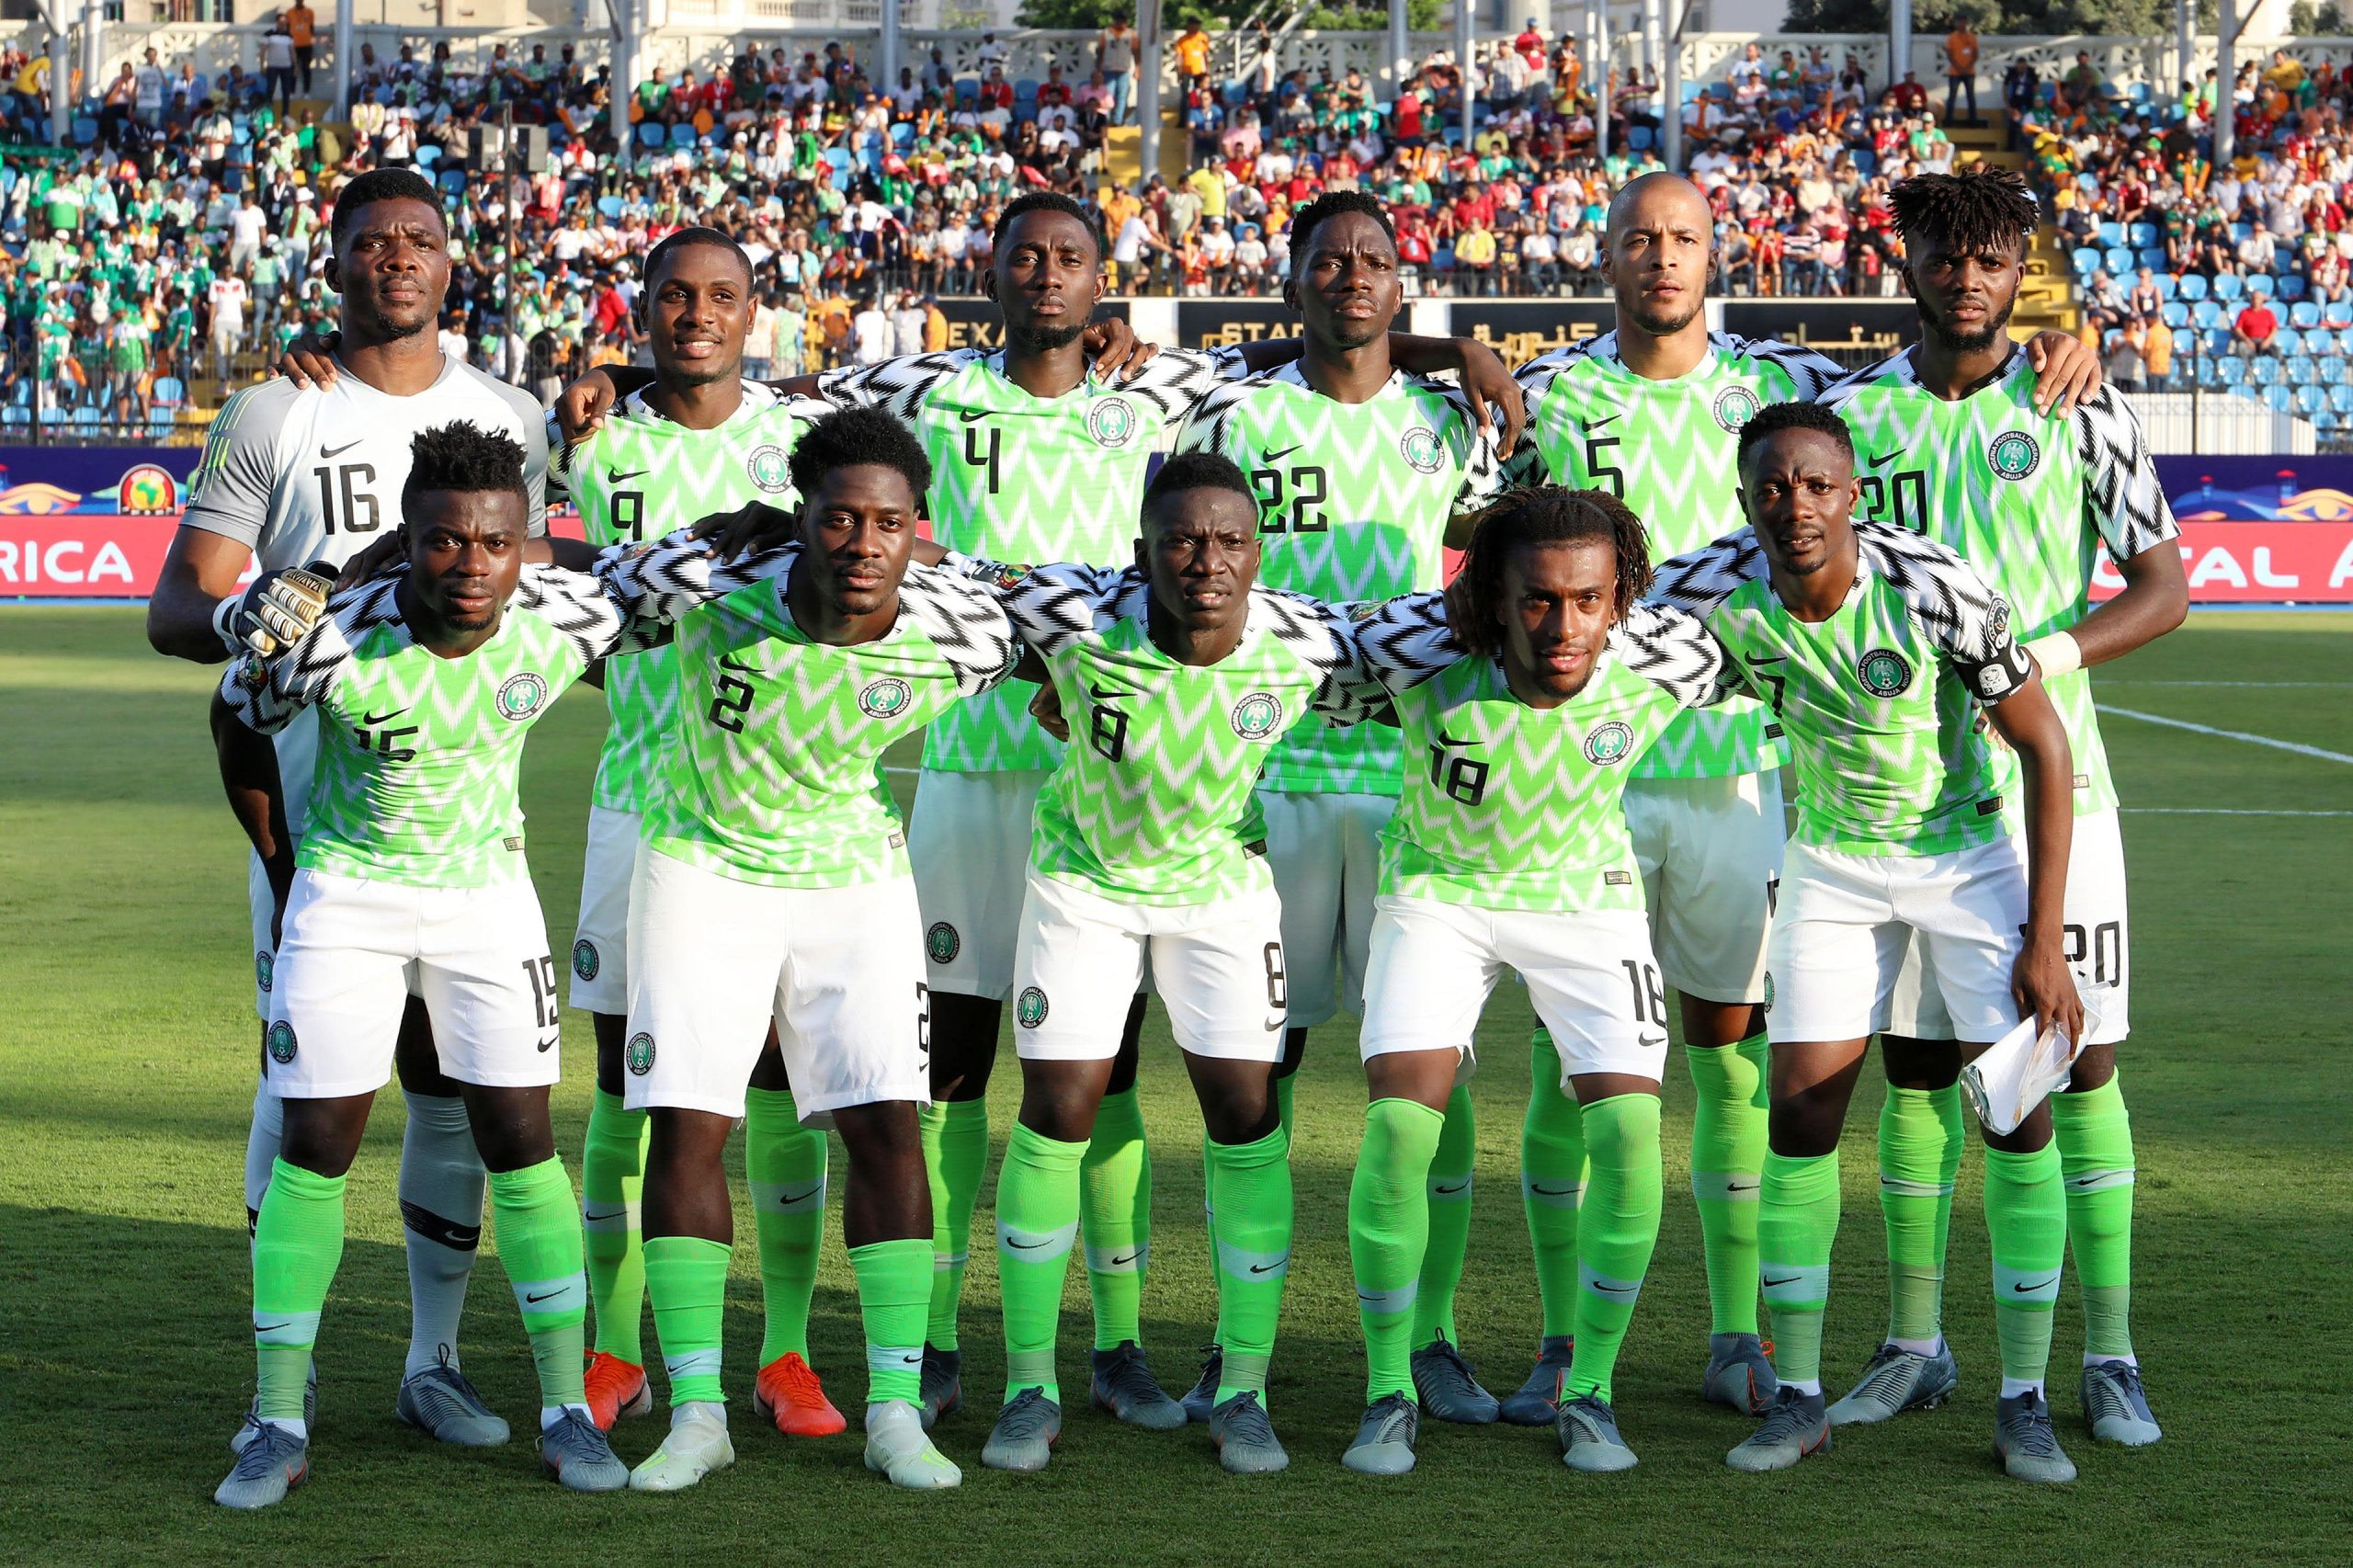 Nigeria ranks 29th in world FIFA ranking